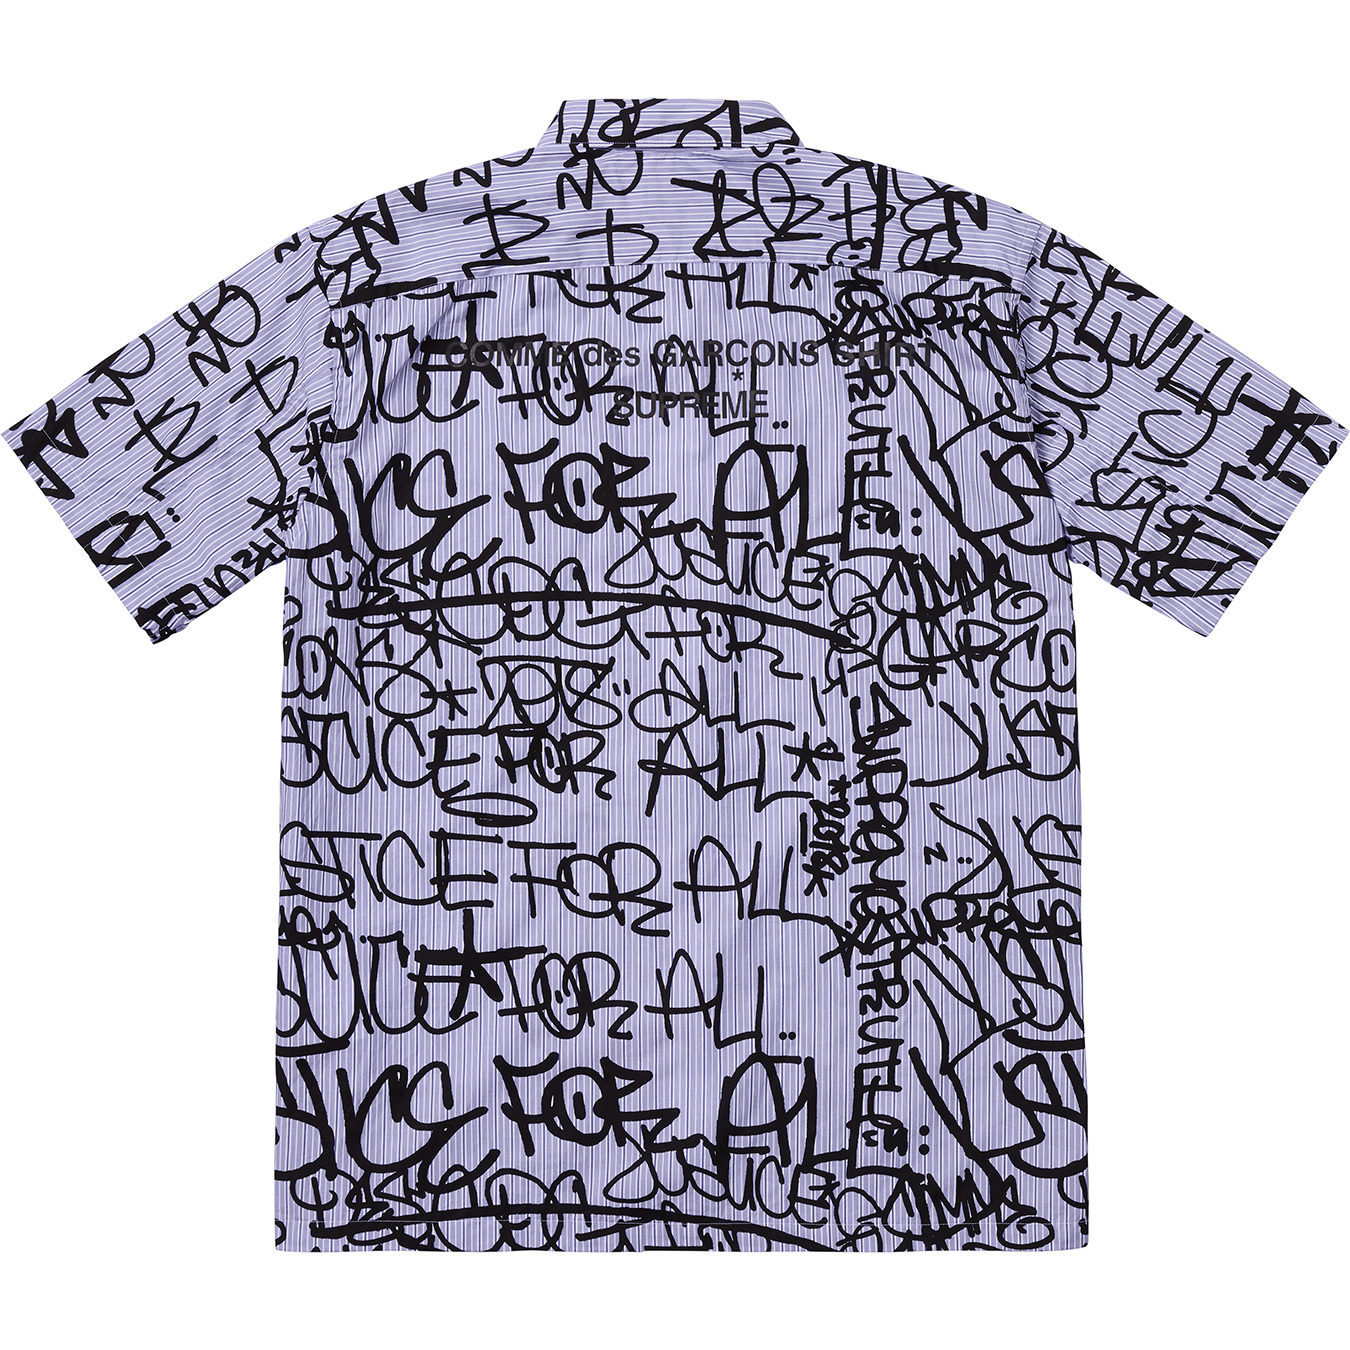 supreme-comme-des-garcons-shirt-cotton-graphic-s-s-shirt-18aw-collaboration-release-20180915-week4